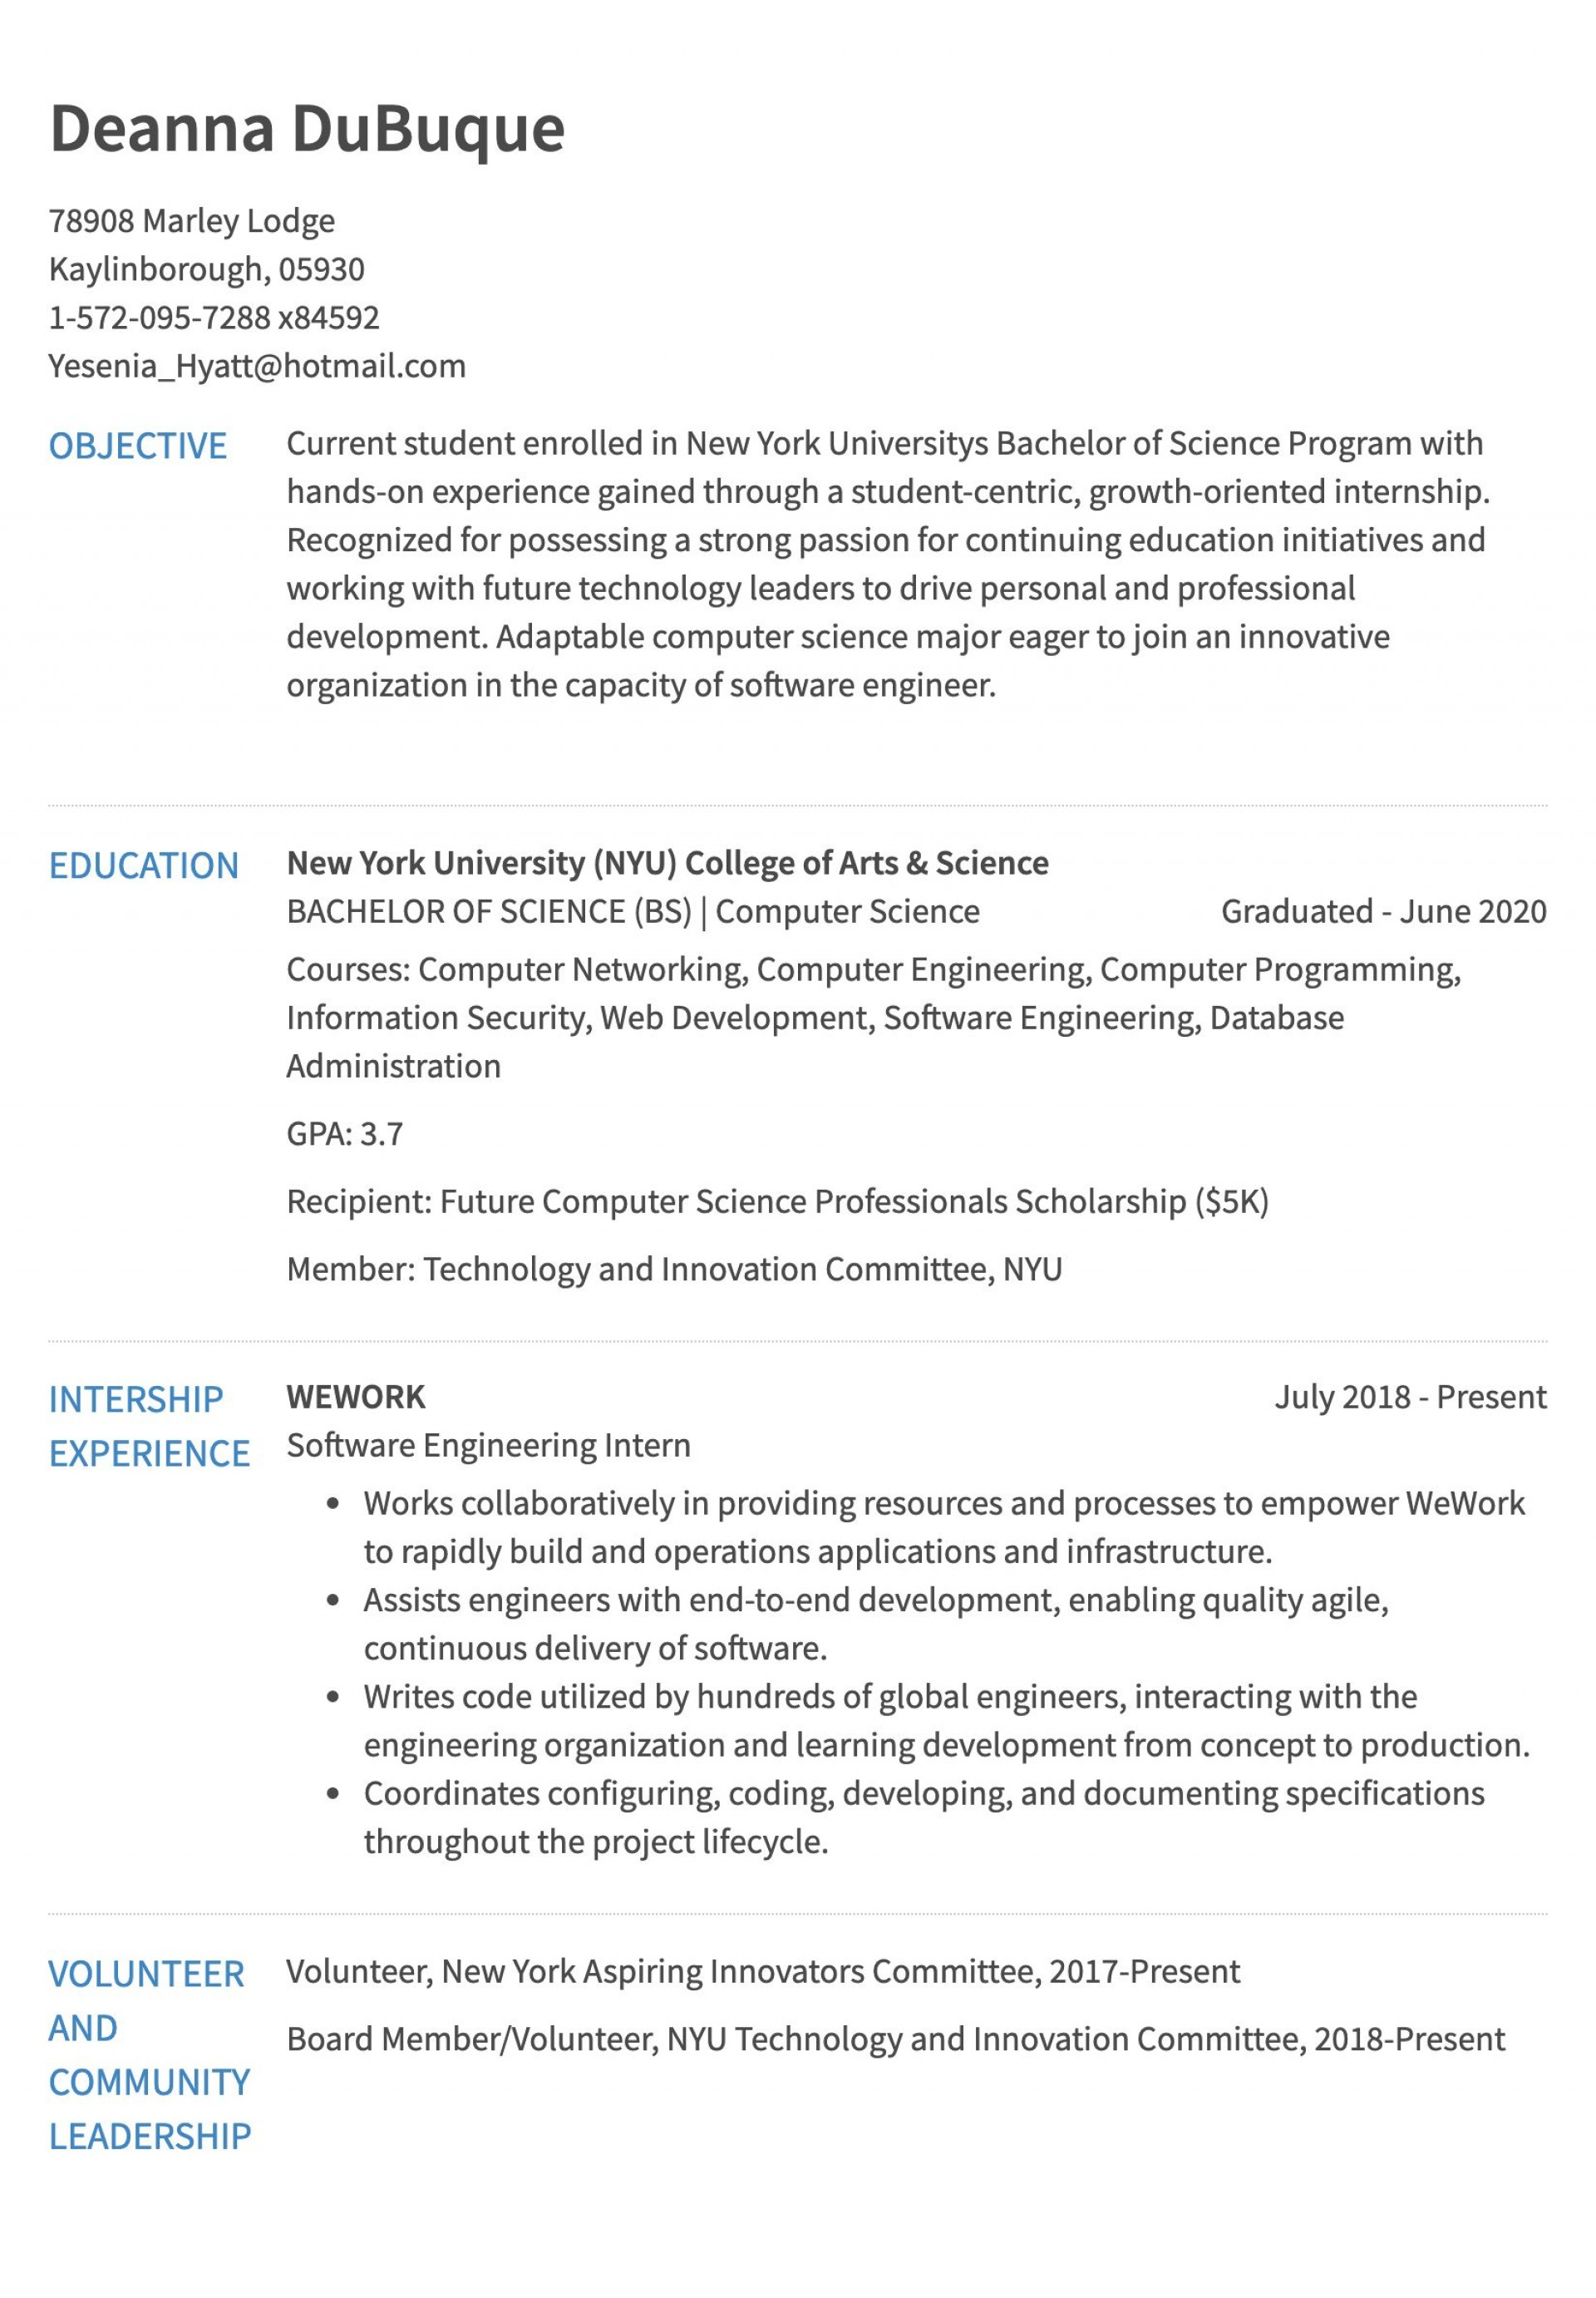 Resume Templates For Internships In Engineering